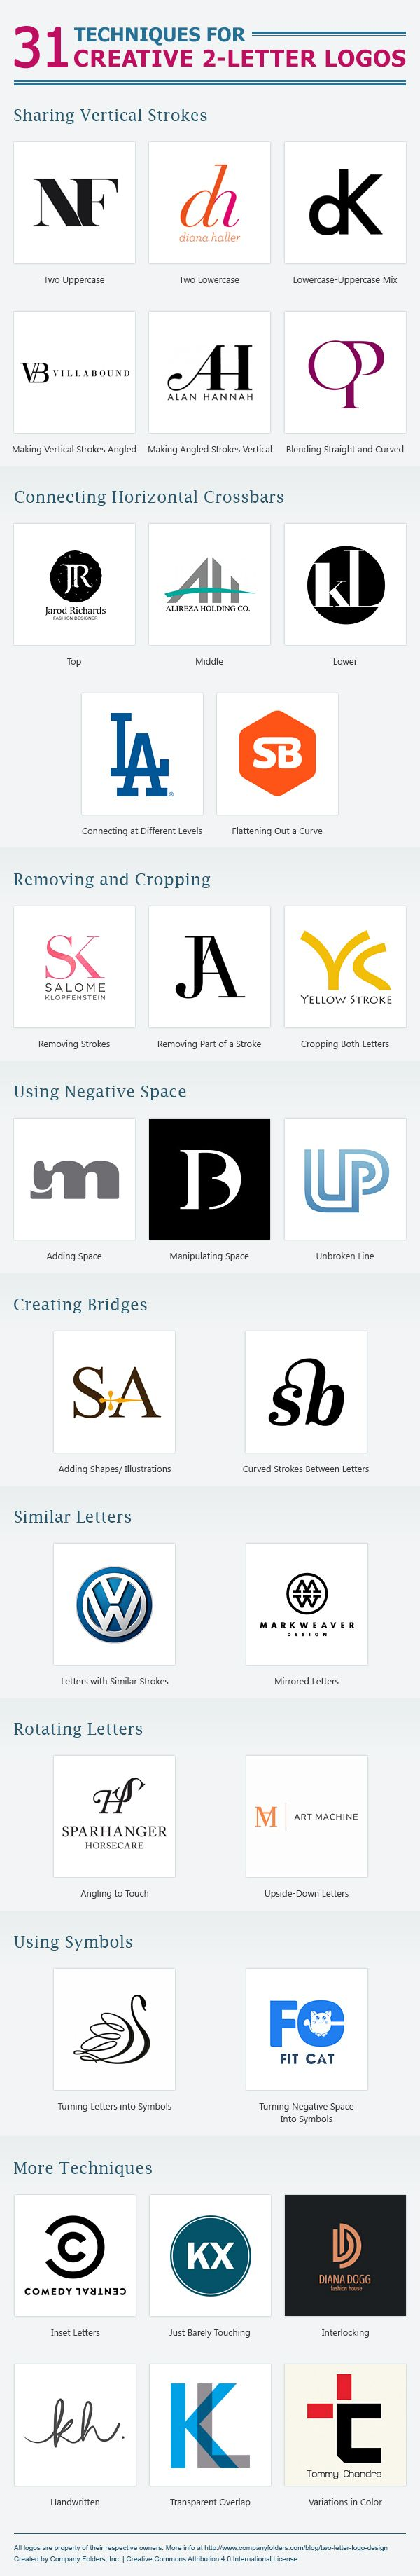 Got a 2Letter Business Name? 31 Ways to Make Your Logo